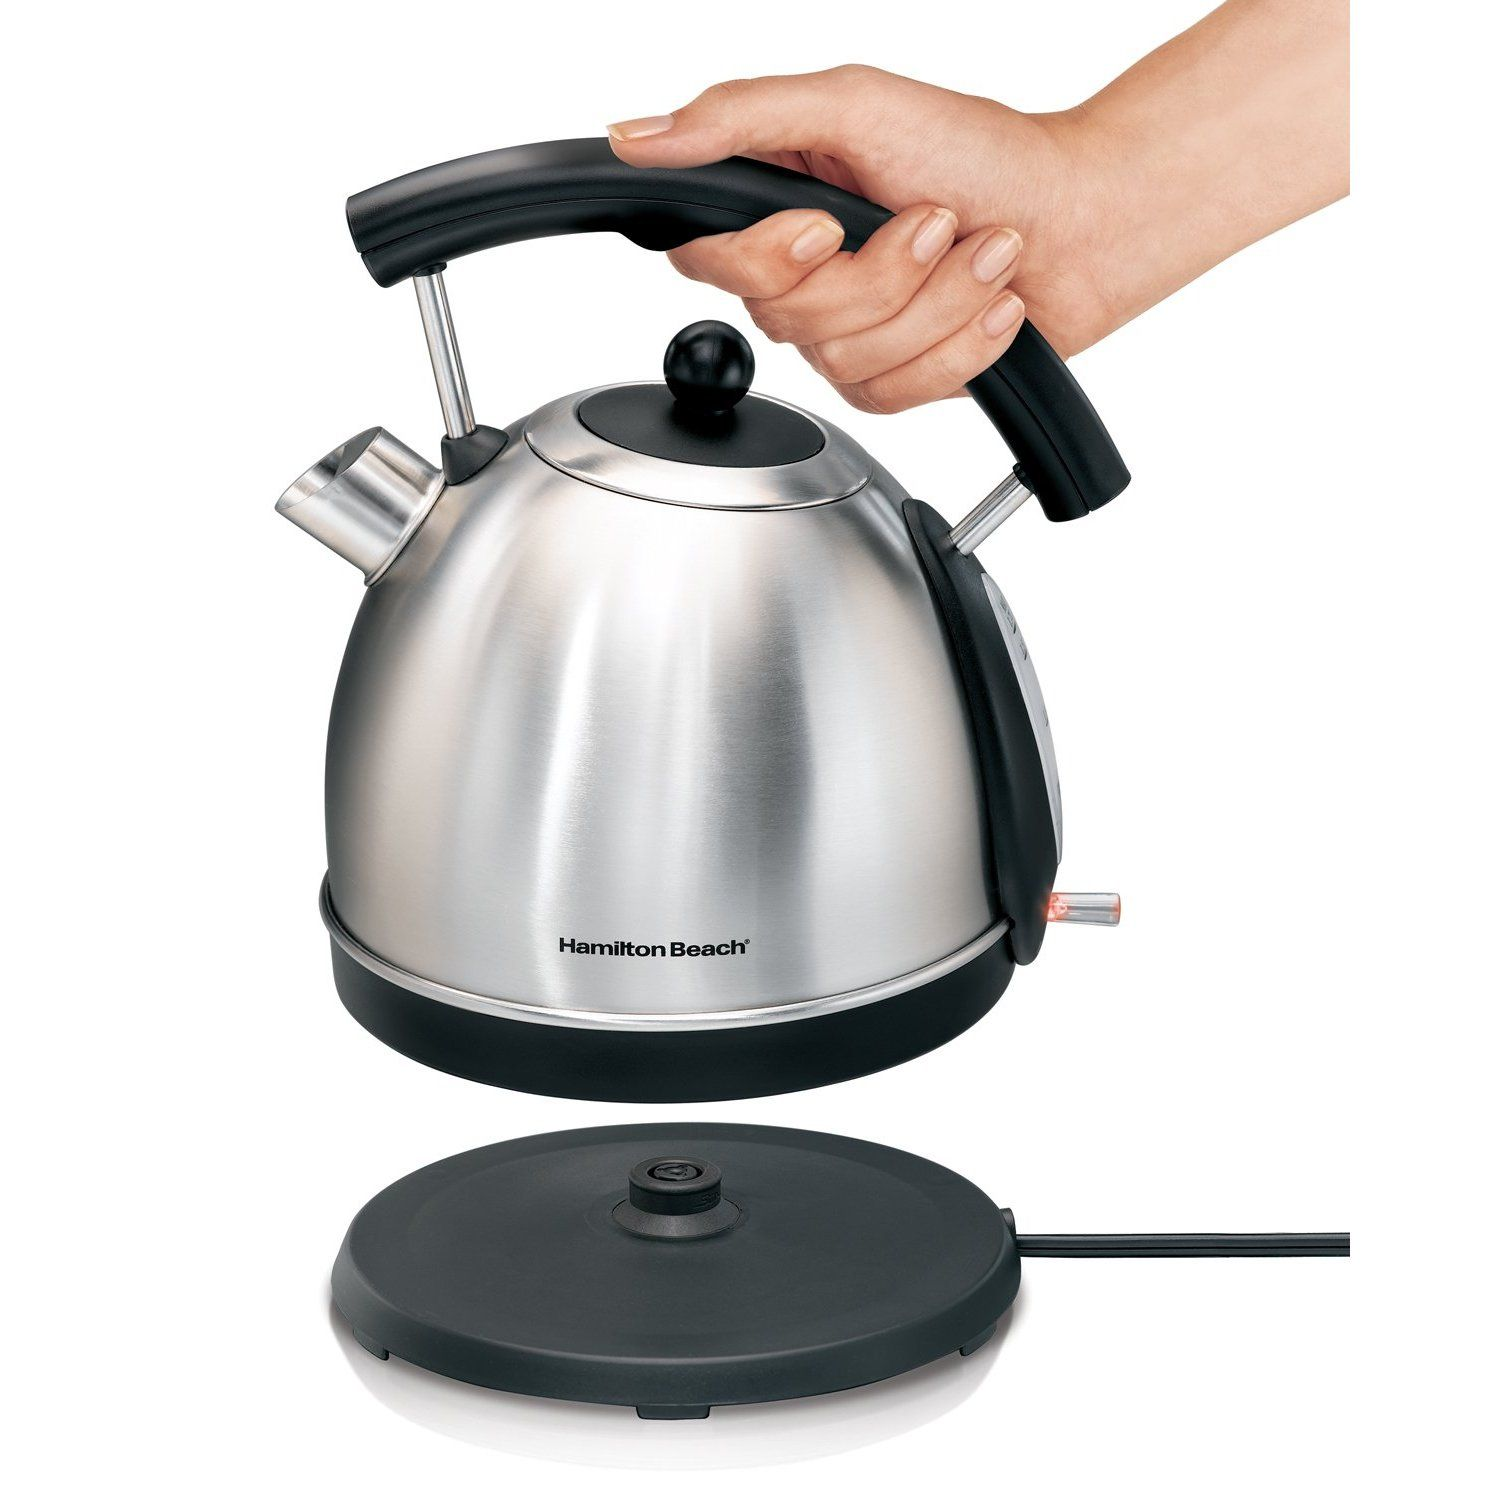 Hamilton beach cup stainless steel electric kettle busy